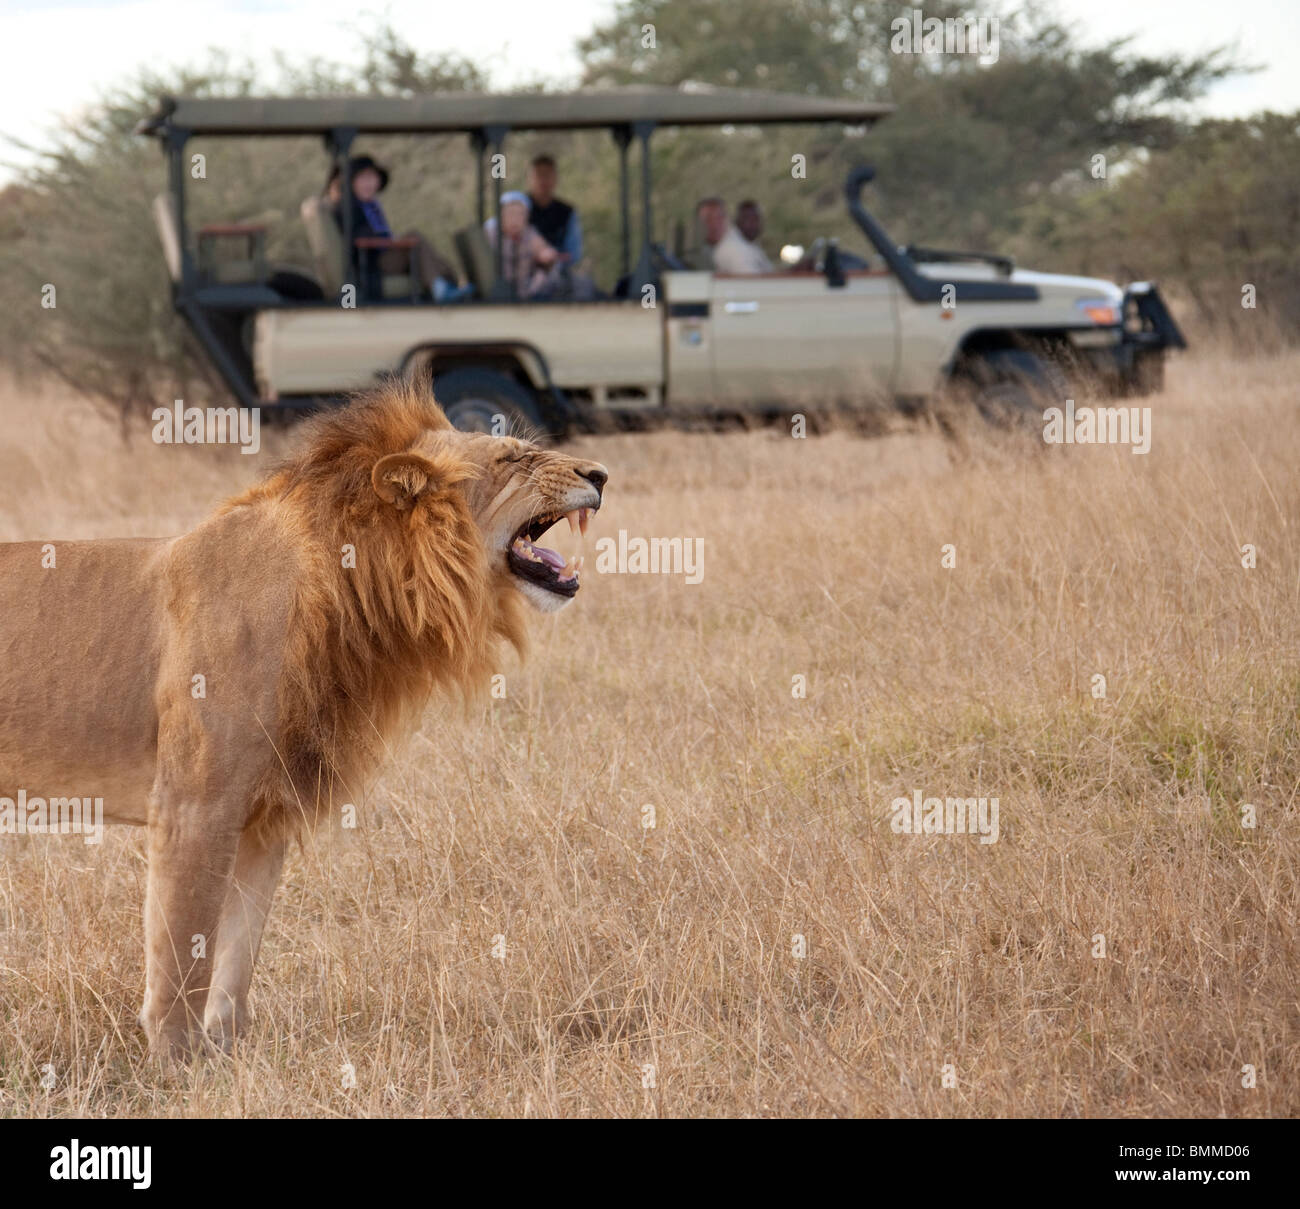 Tourists on Safari looking at a mature male lion (Panthera leo) in the Savuti Region of Botswana. - Stock Image